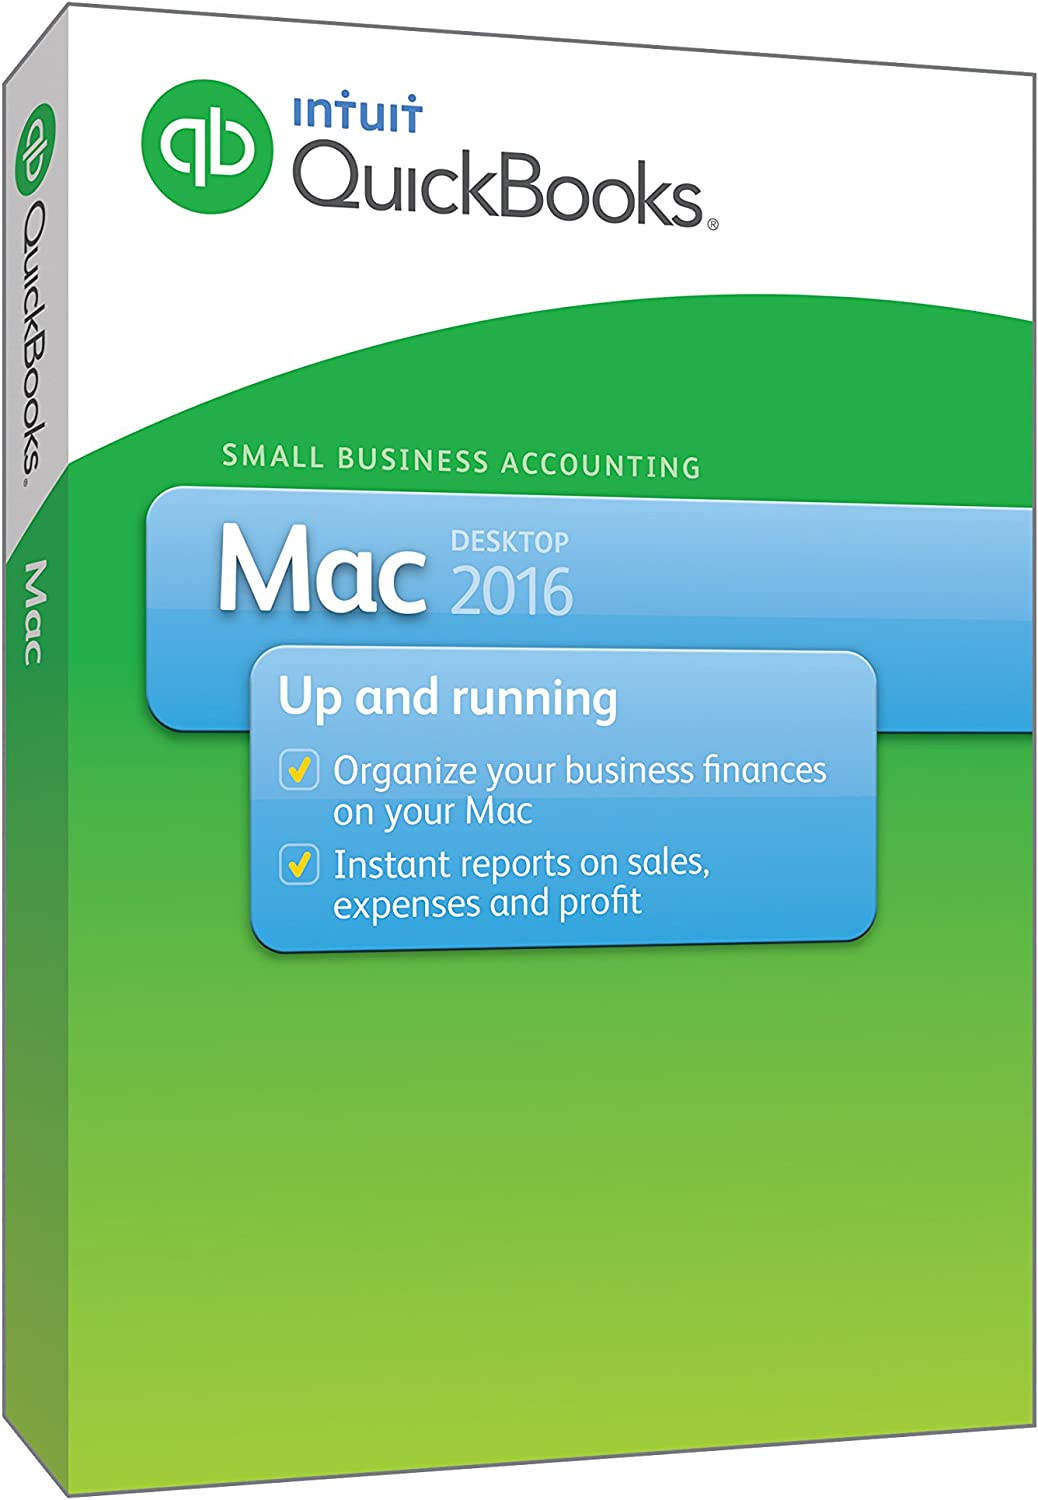 Small Business Accounting For Mac